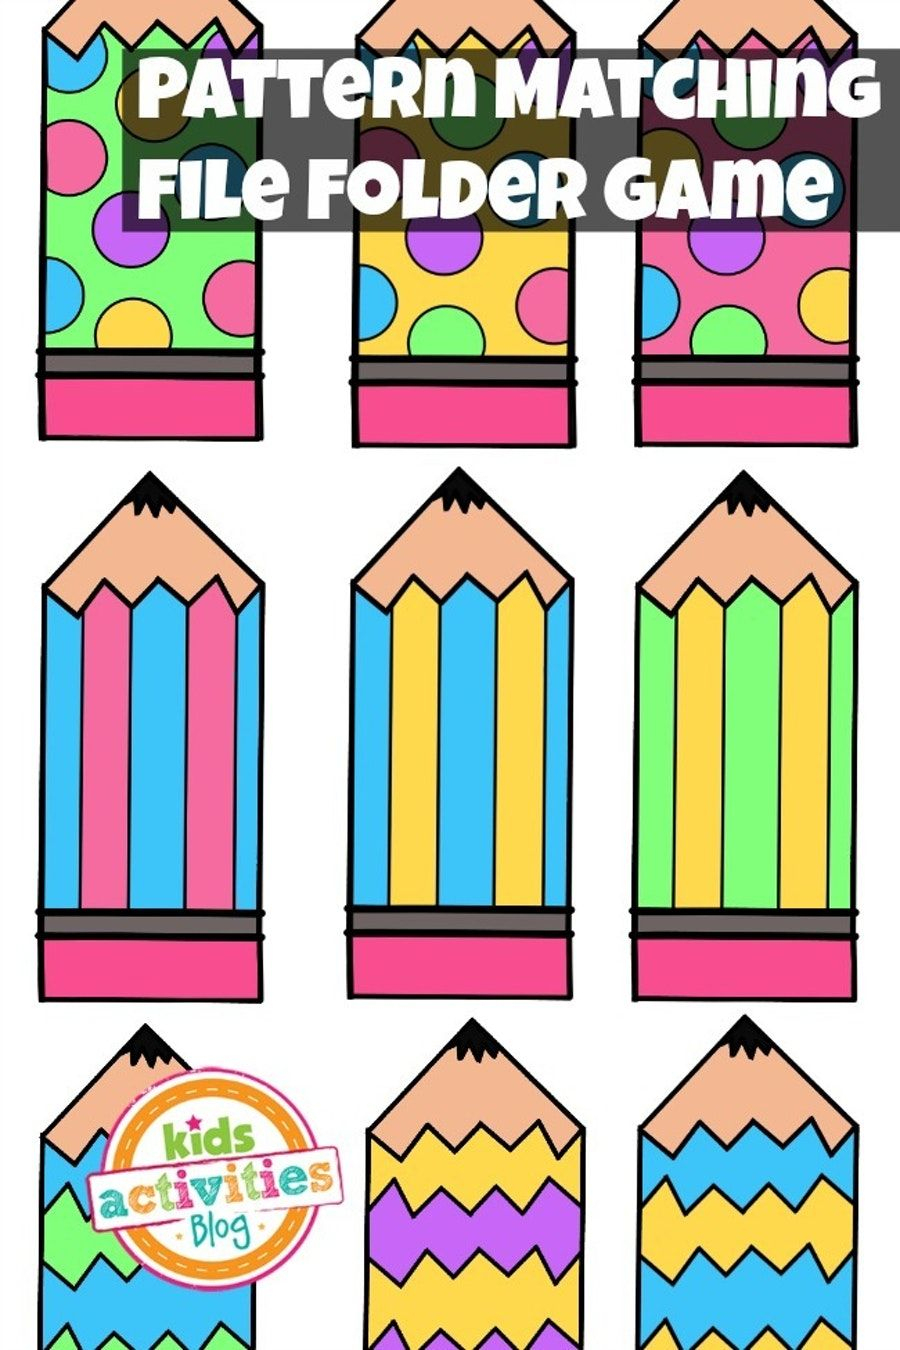 Pattern Matching Free Printable File Folder Game For Preschoolers - Free Printable File Folder Games